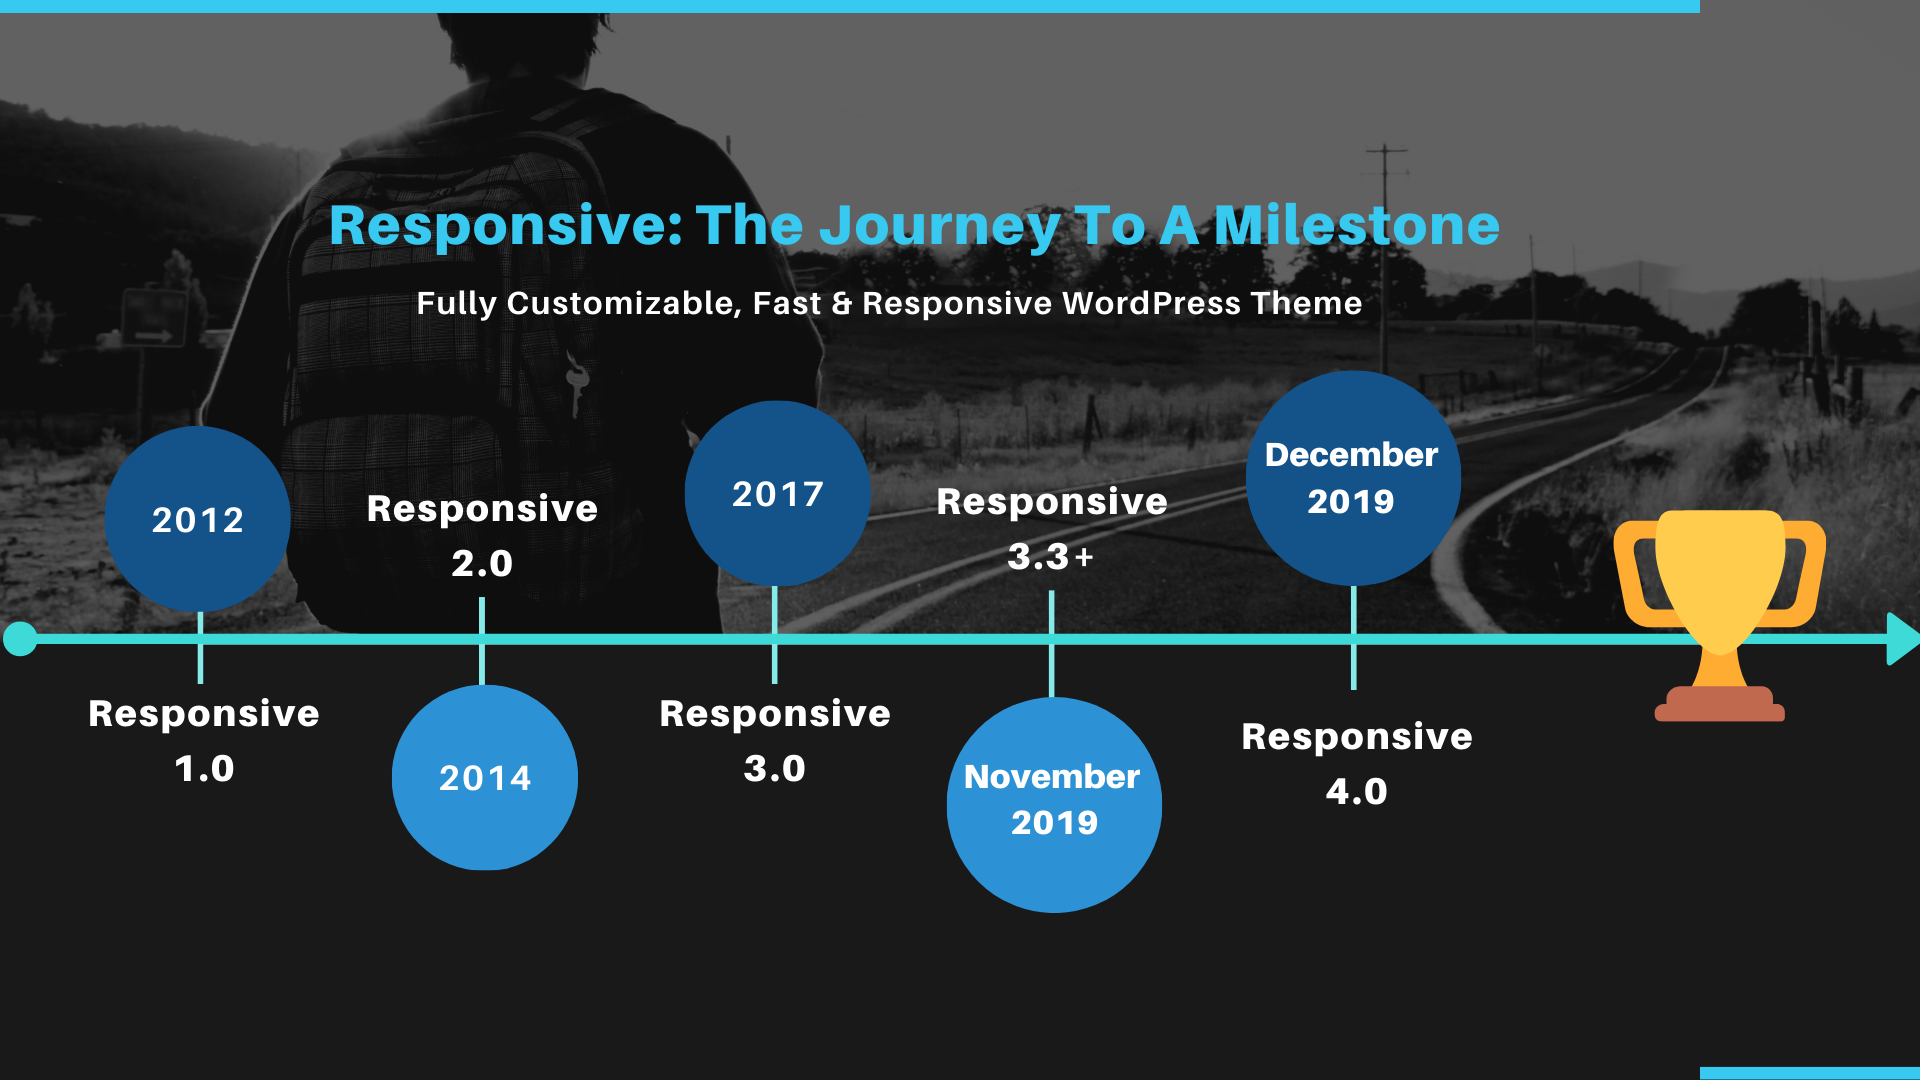 Responsive: The Journey To A Milestone